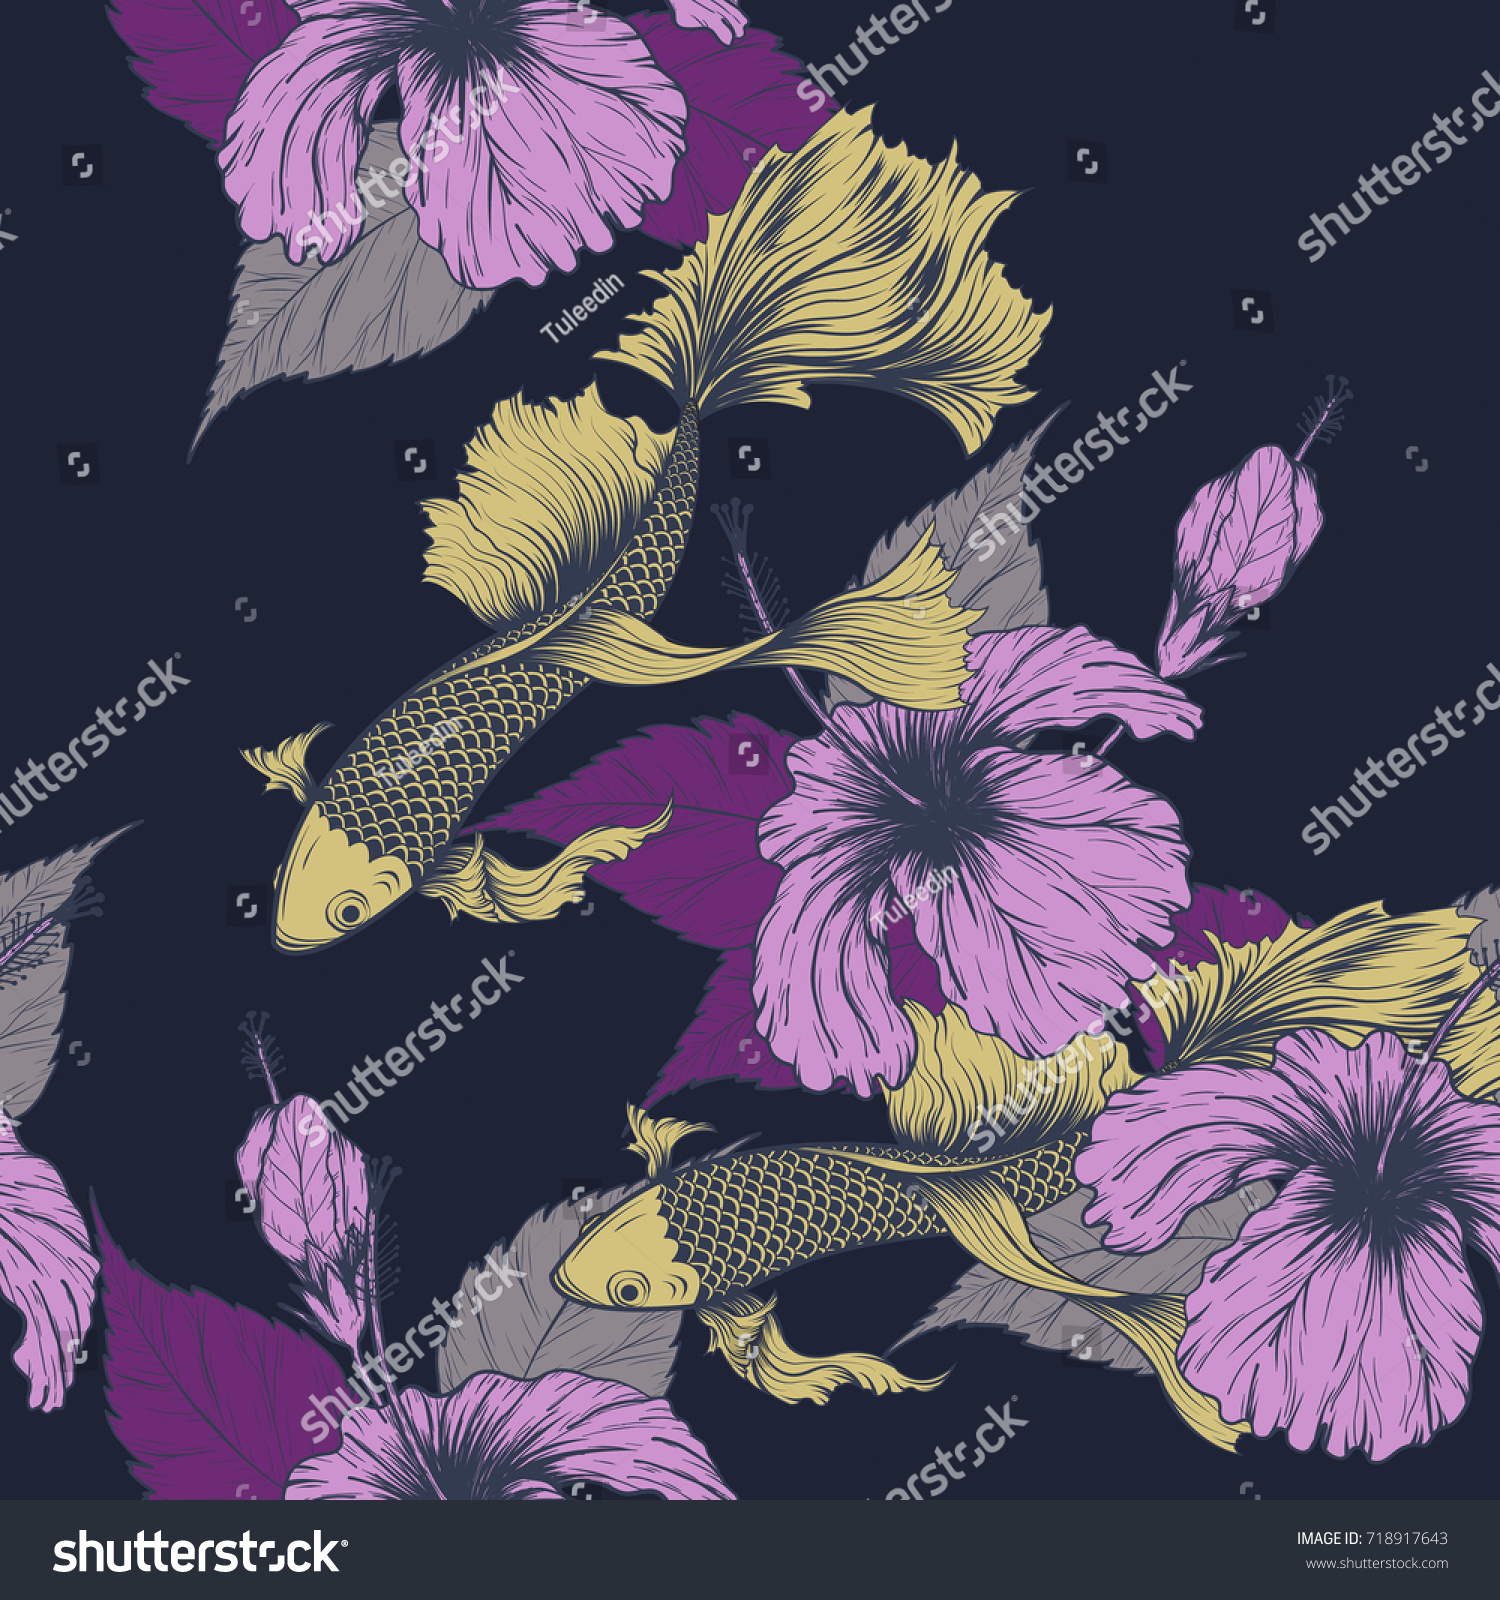 Koi fish hibiscus flower pattern by stock photo photo vector koi fish and hibiscus flower pattern by hand drawing art highly detailed in line izmirmasajfo